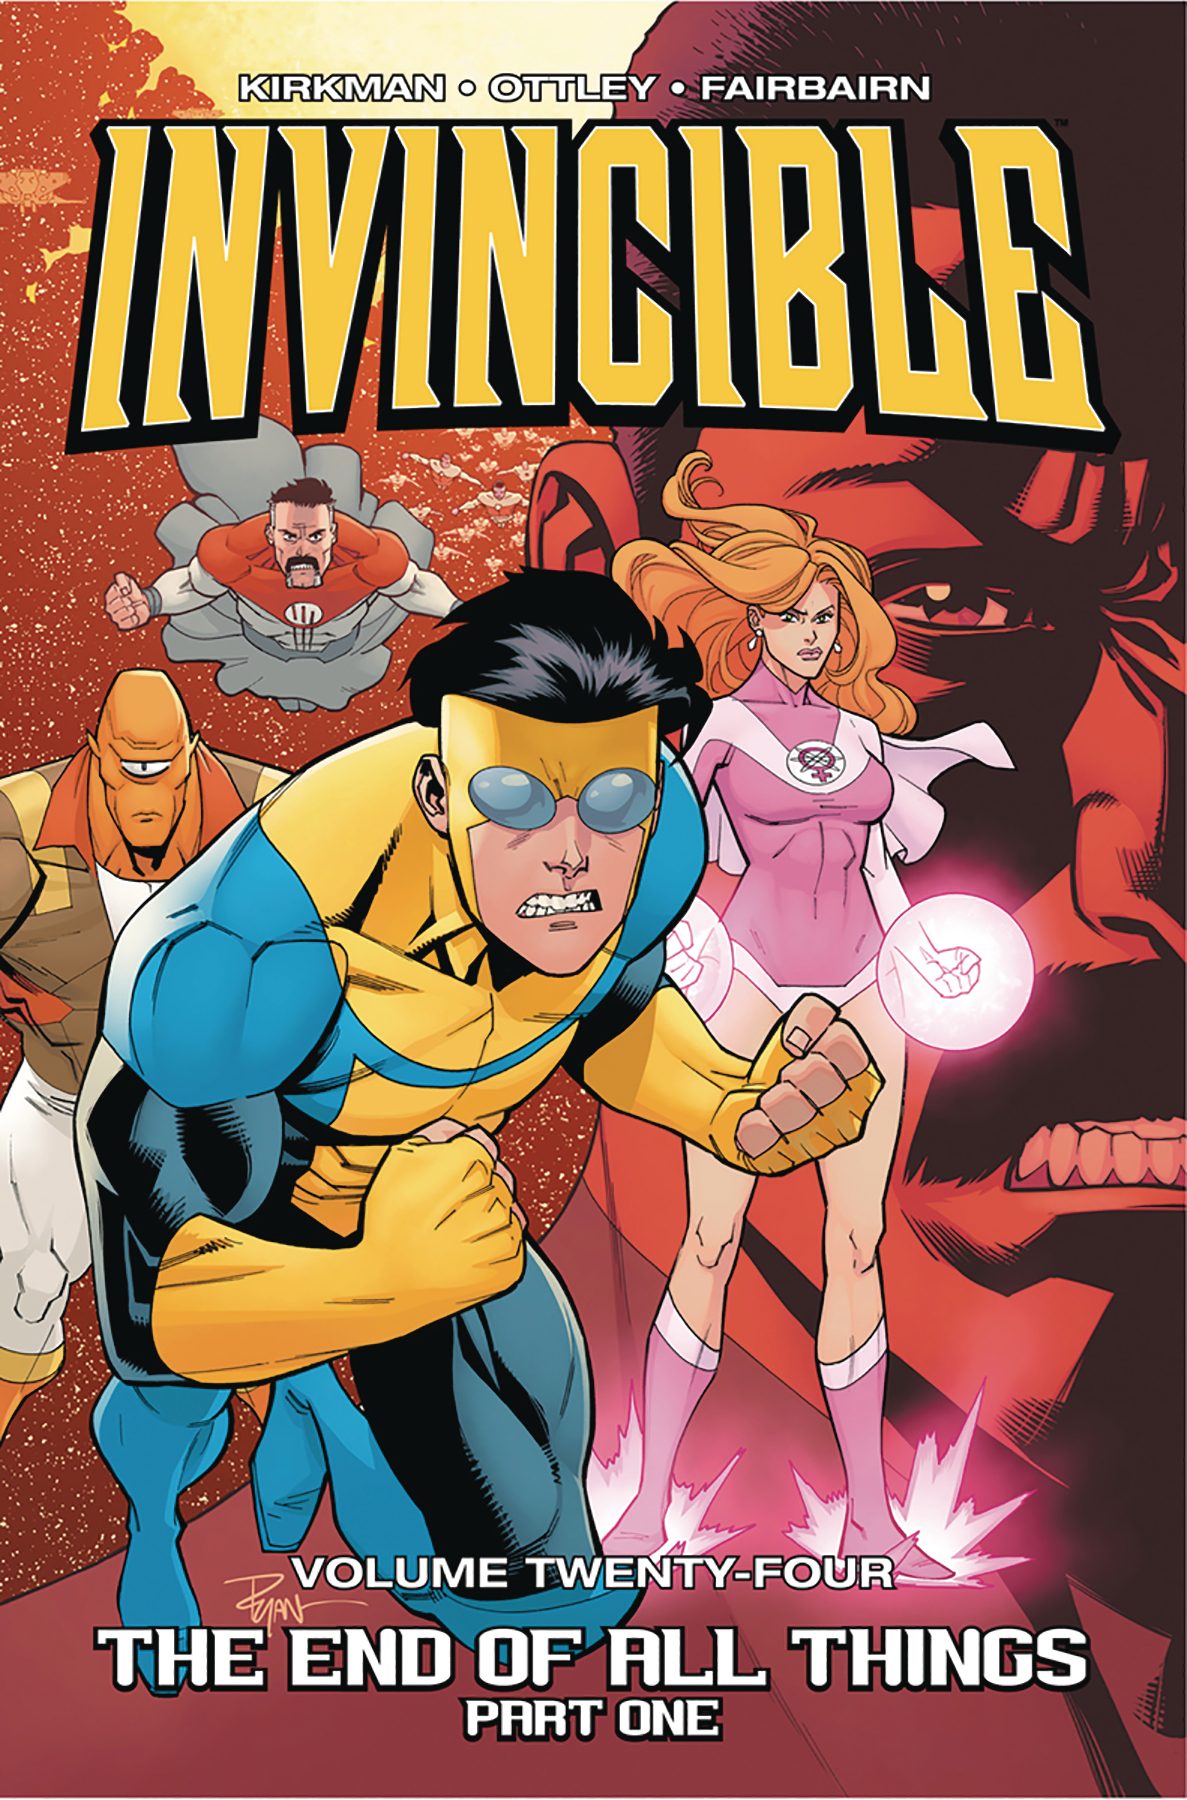 INVINCIBLE TP VOL 24 END OF ALL THINGS PART 1 (JUL170817) (M